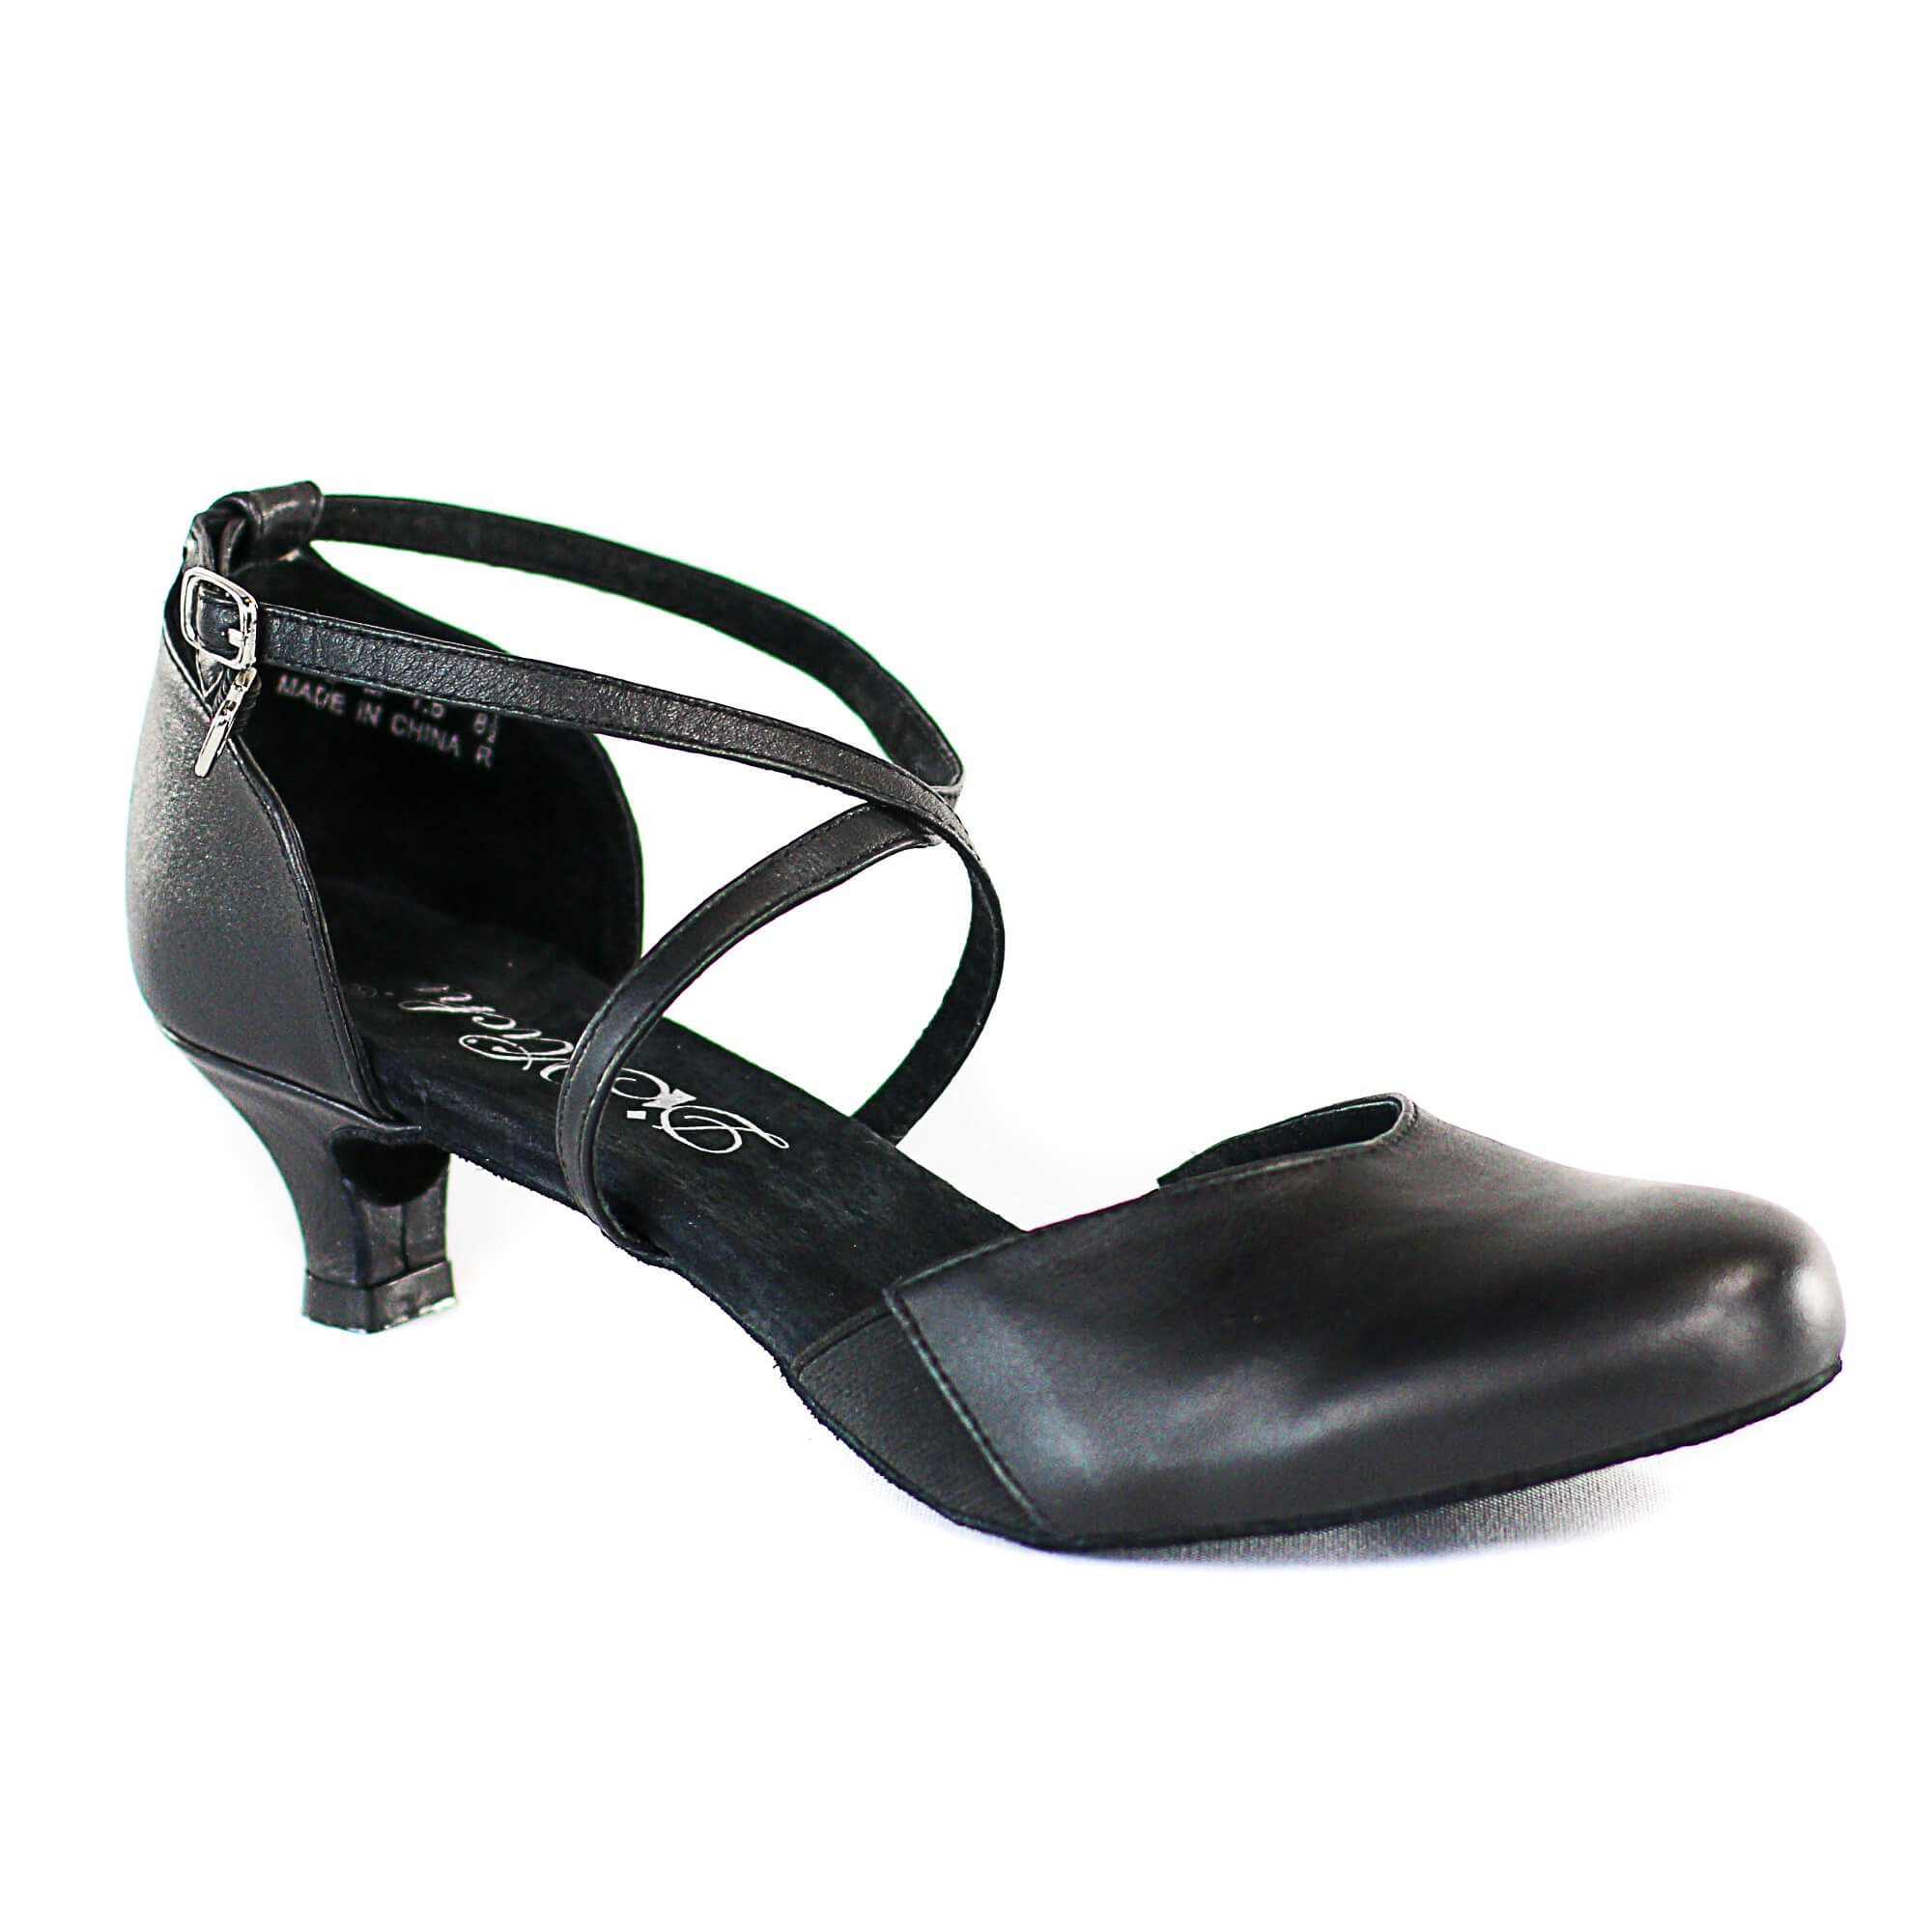 "Dimichi Adult ""SASHA"" Close-Toe 1.5"" Heel Ballroom Shoe"